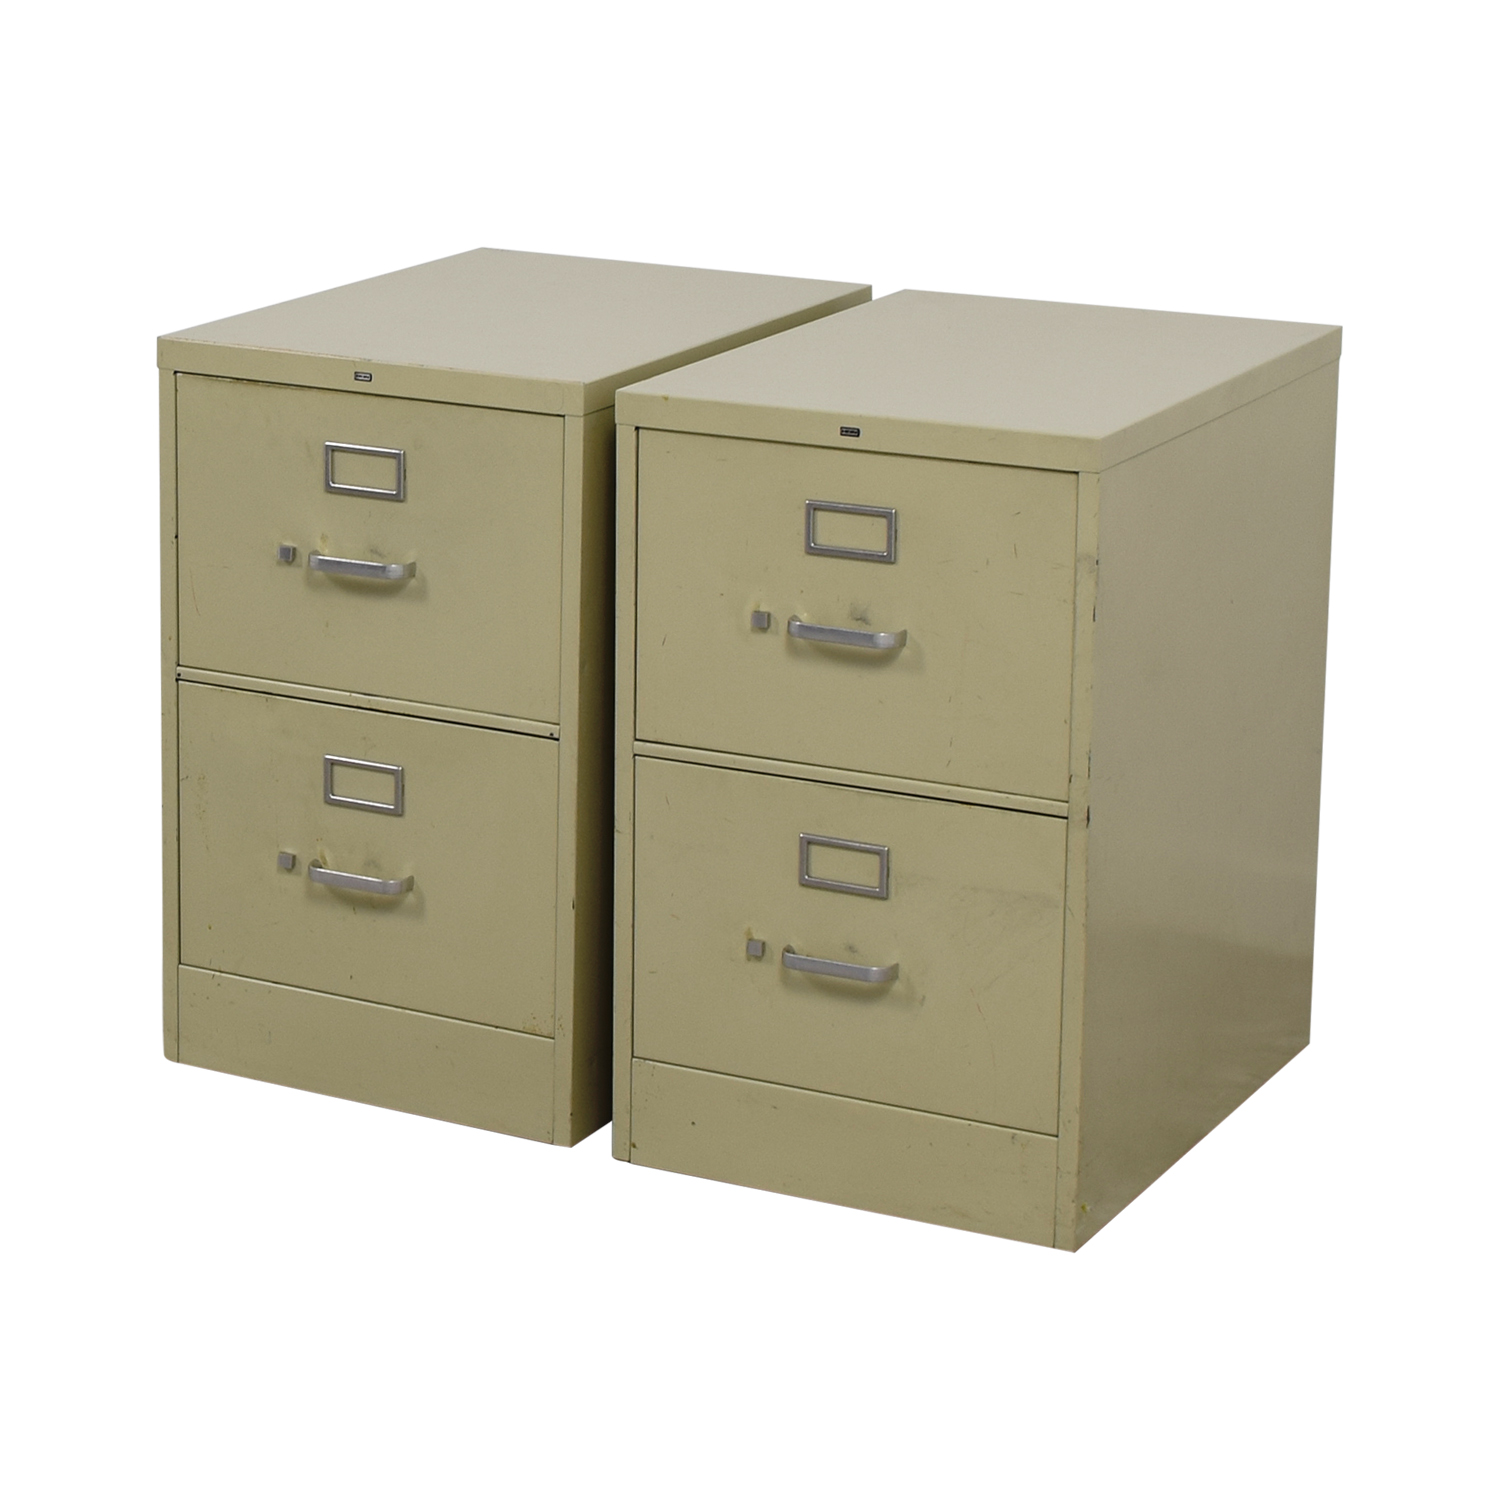 Two-Drawer Grey Metal File Cabinets used